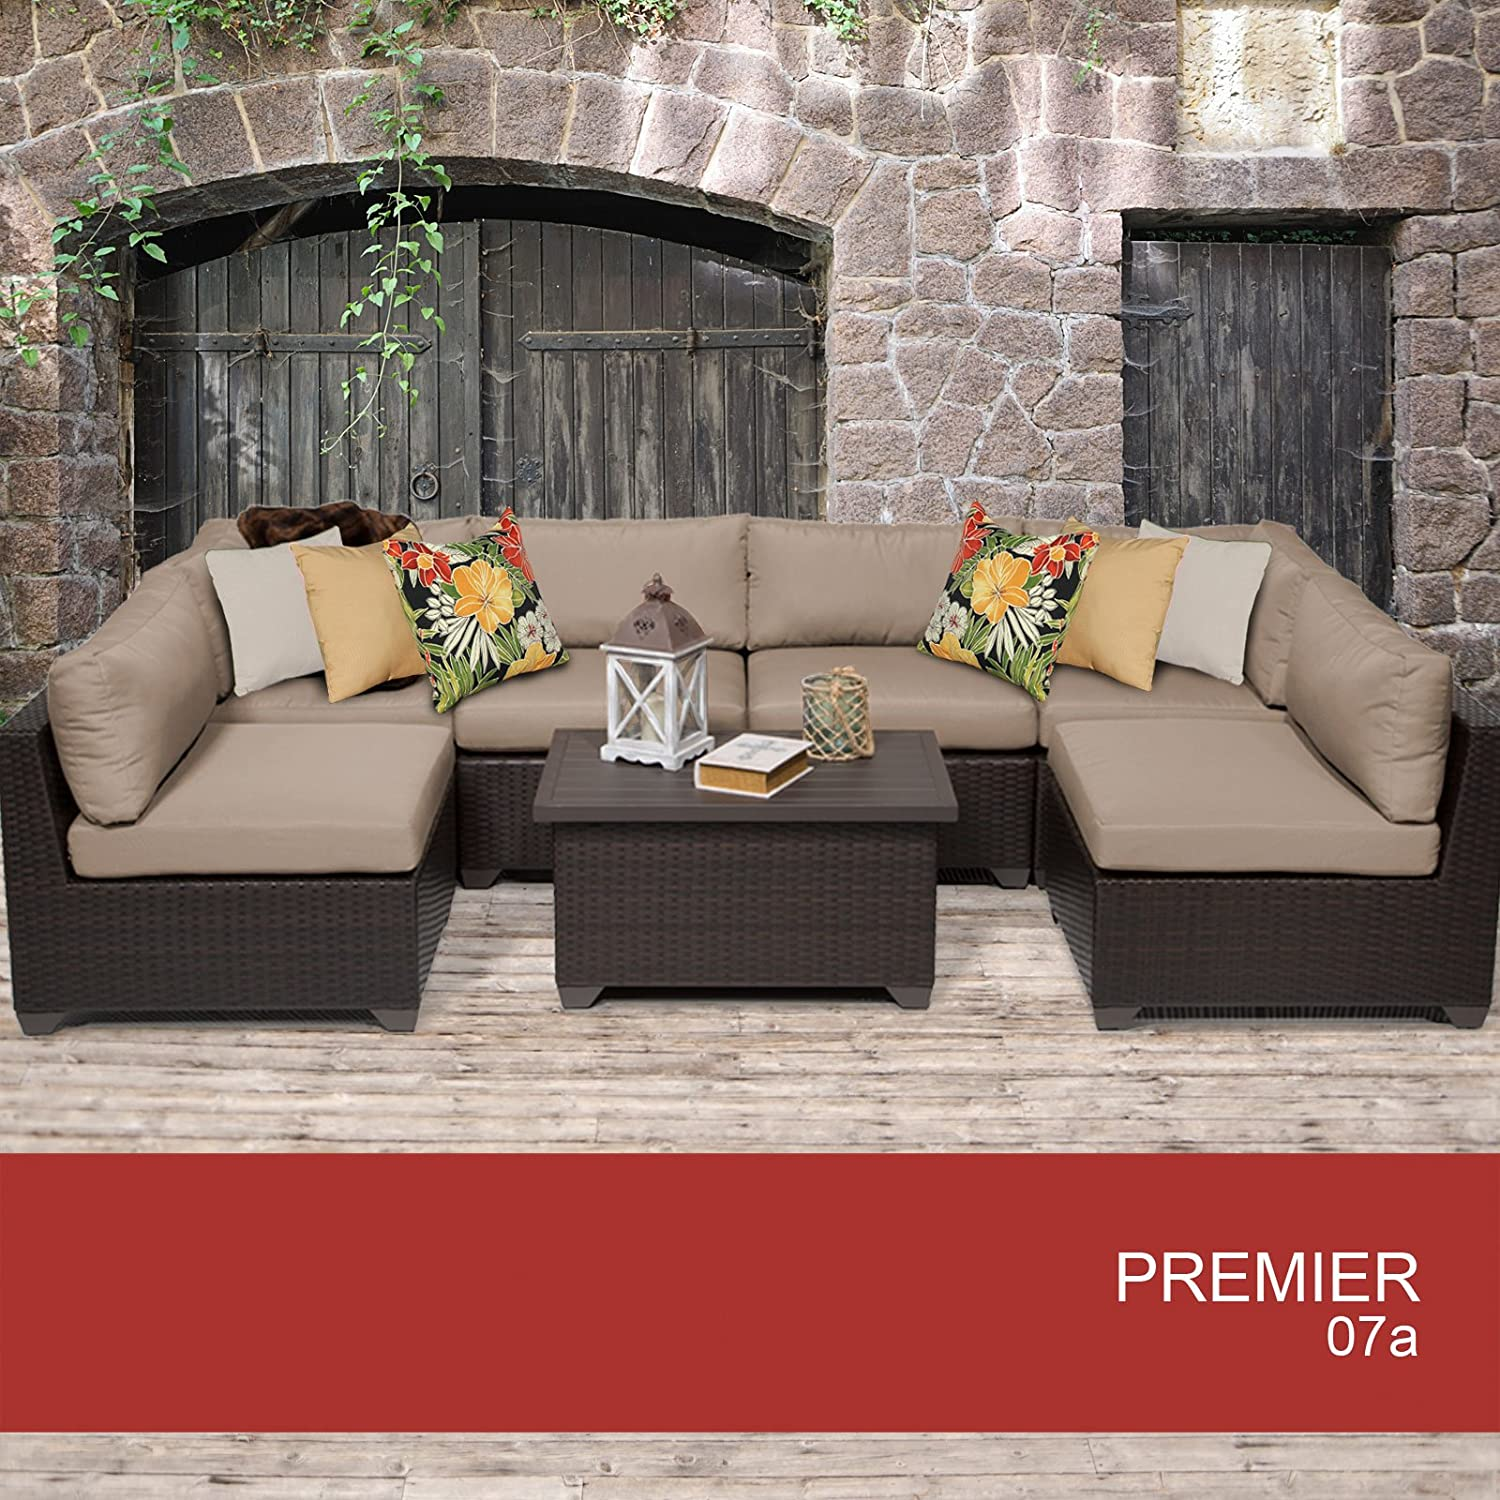 Amazon Premier 7 Piece Outdoor Wicker Patio Furniture Set 07a